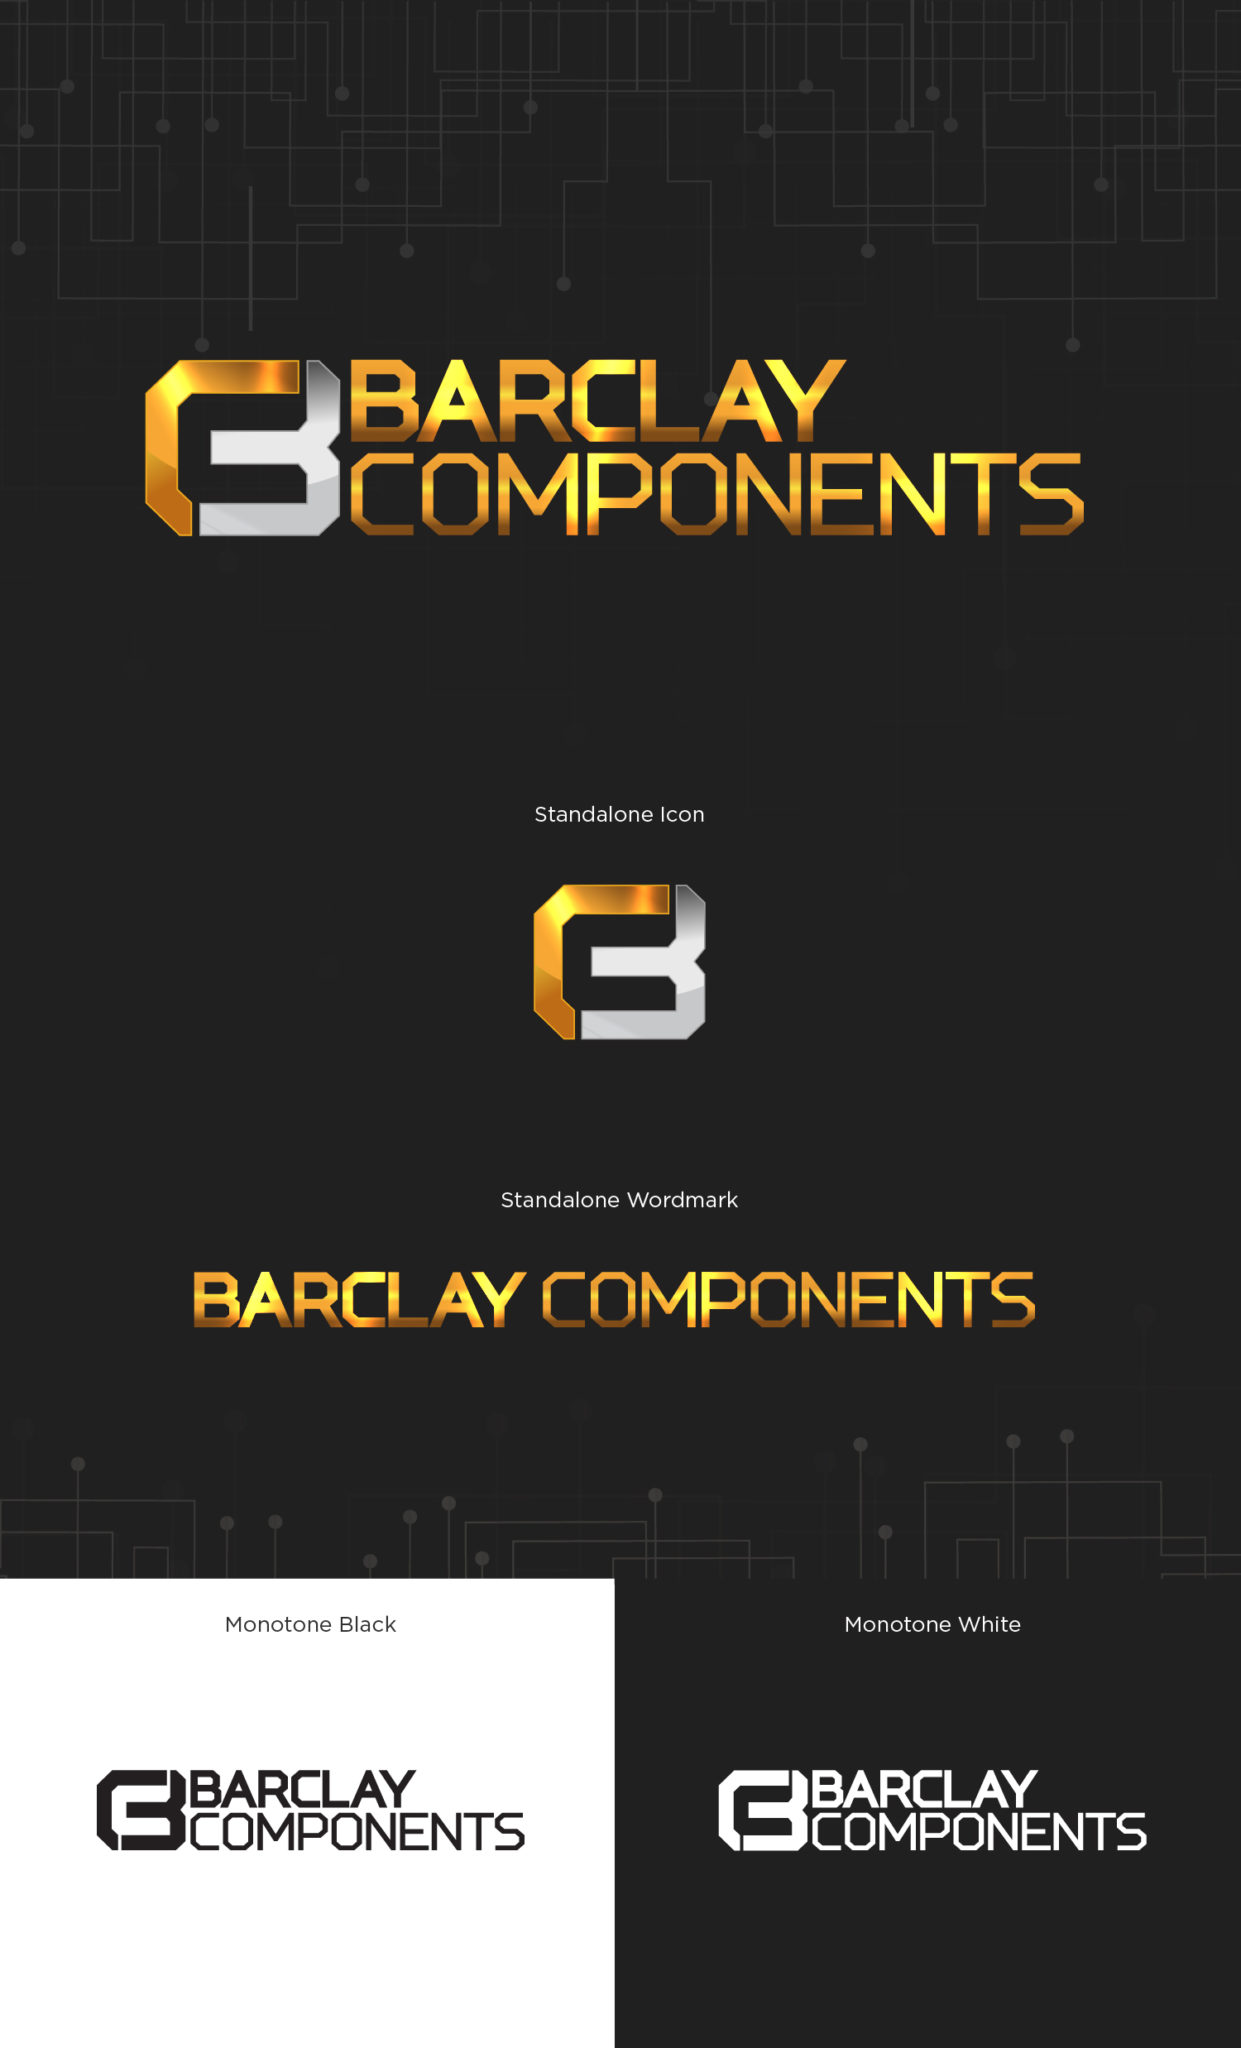 Barclay Components Logo Design & Branding